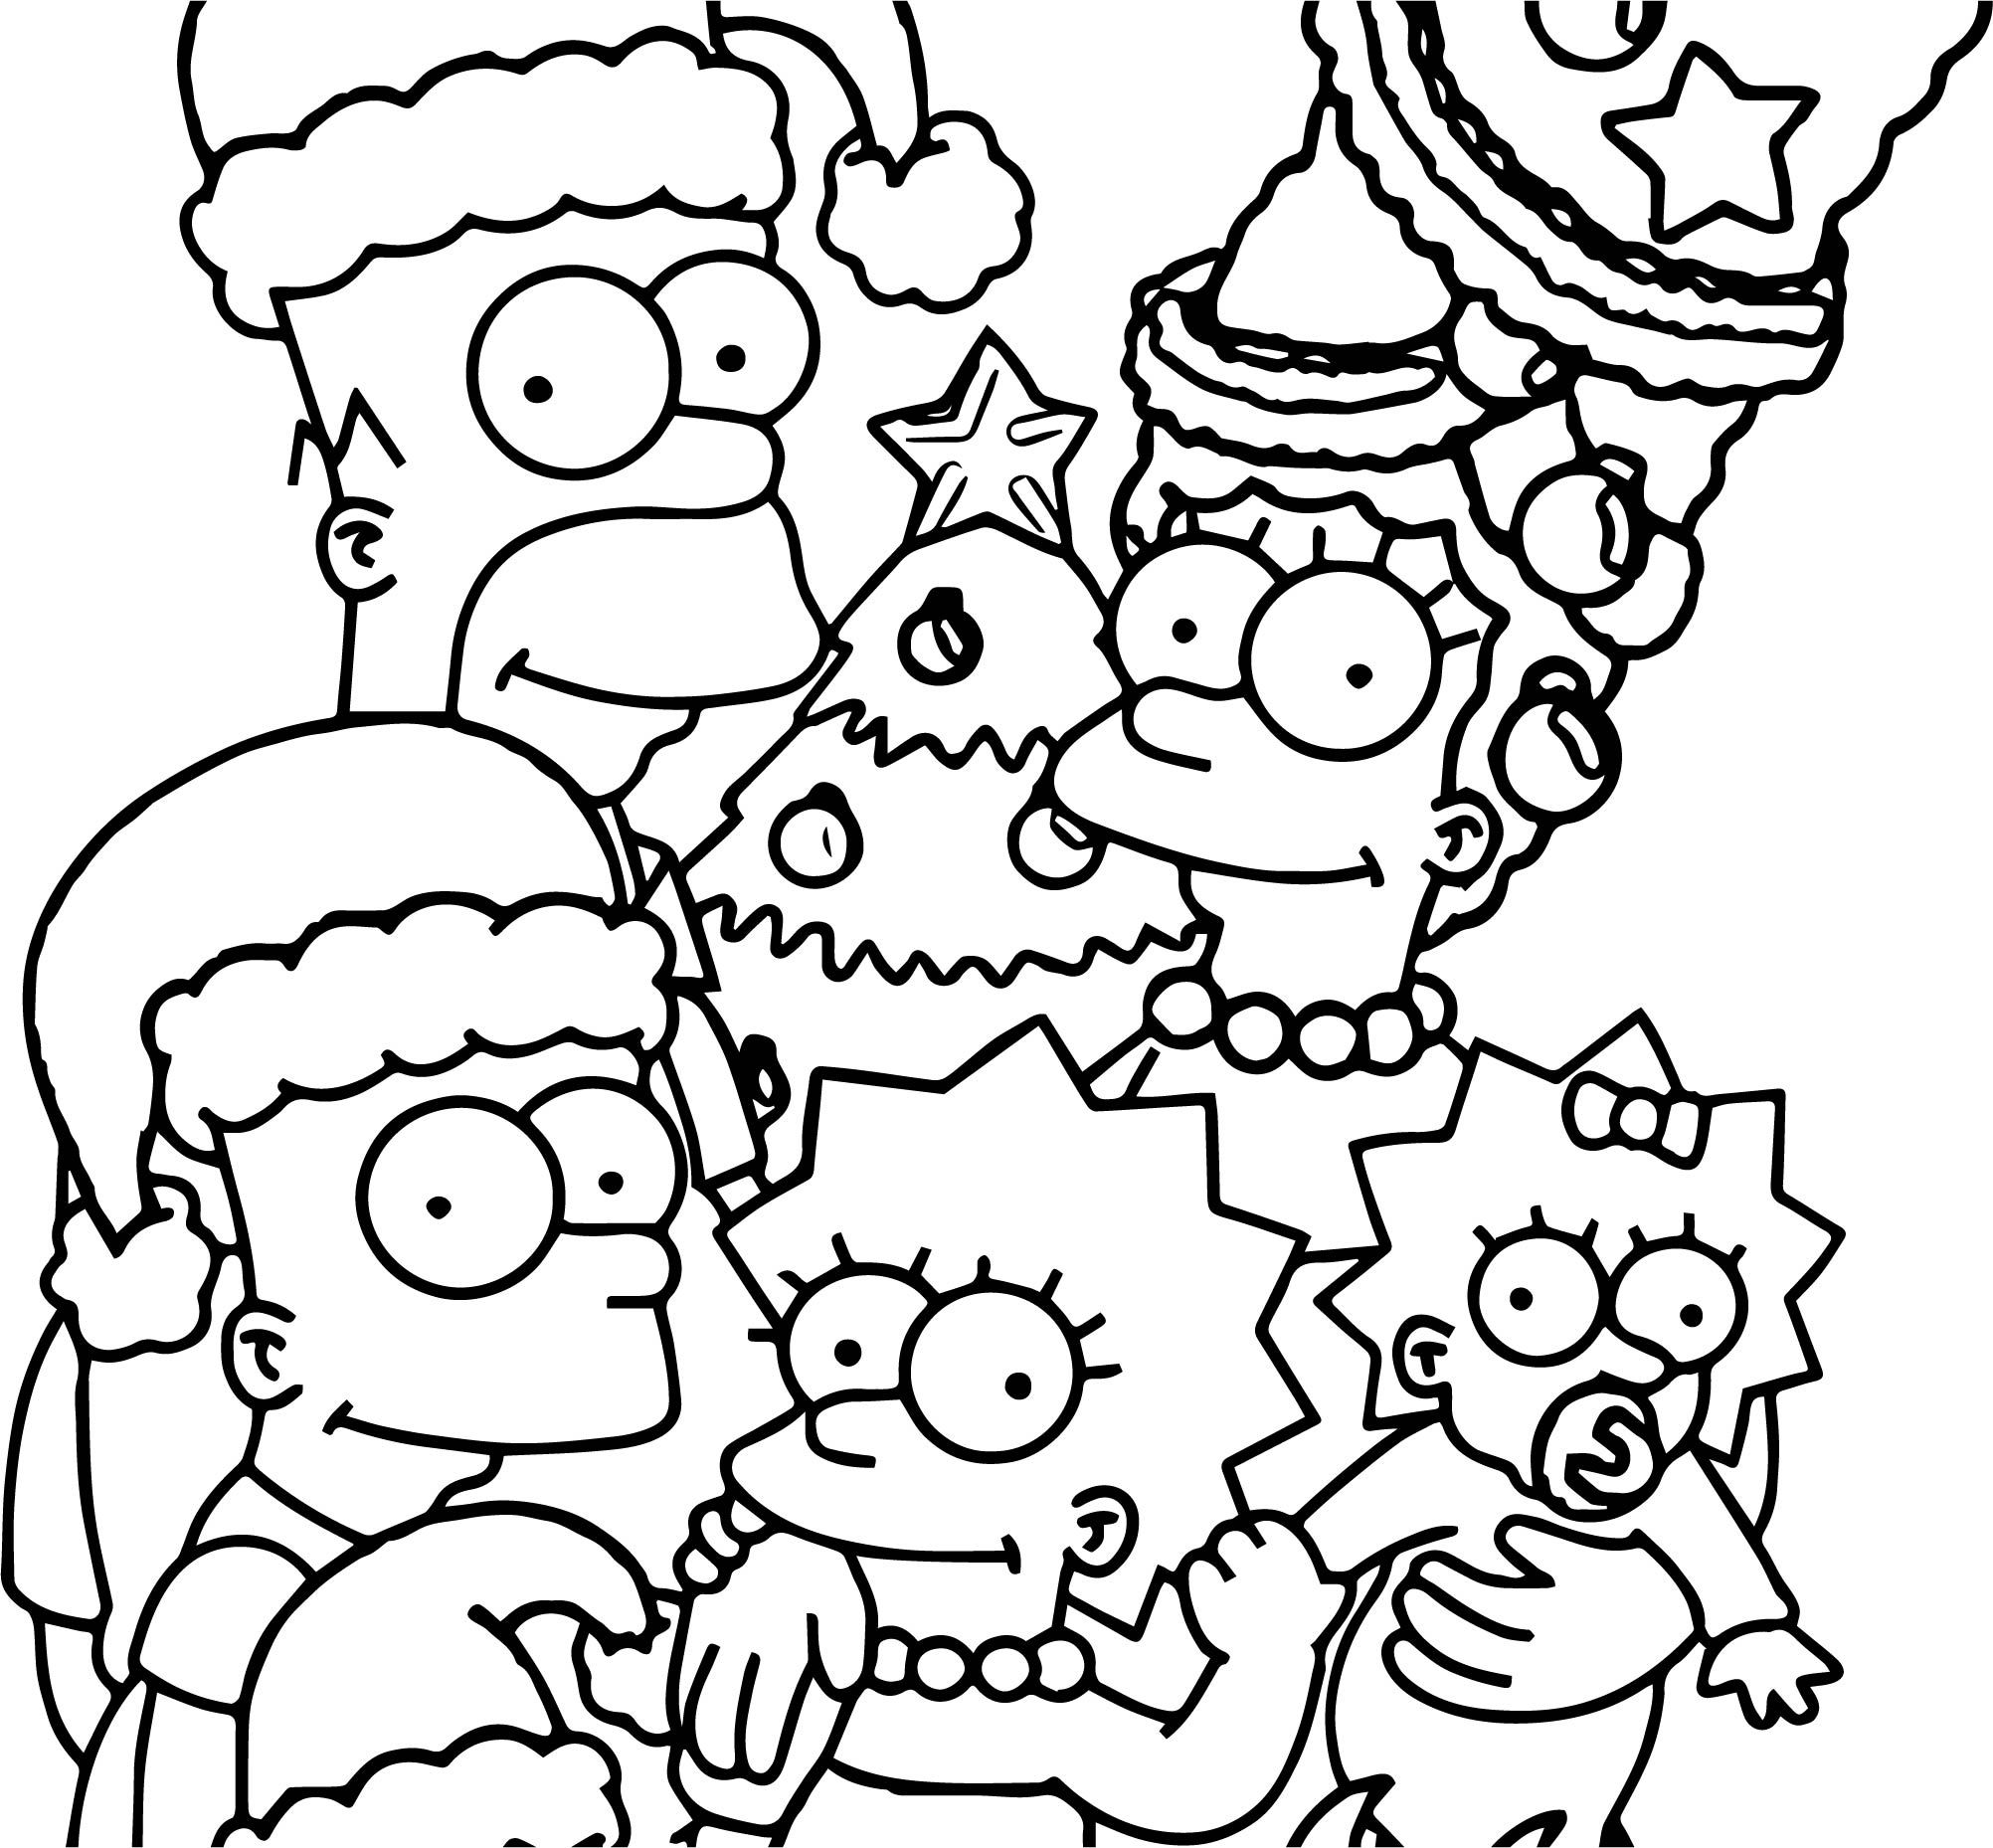 Cartoon Christmas Coloring Pages 8 L The Simpsons Wallpaper Christmas Coloring Page Jpg 2 004 1 858 Pi Christmas Coloring Pages Christmas Colors Coloring Books